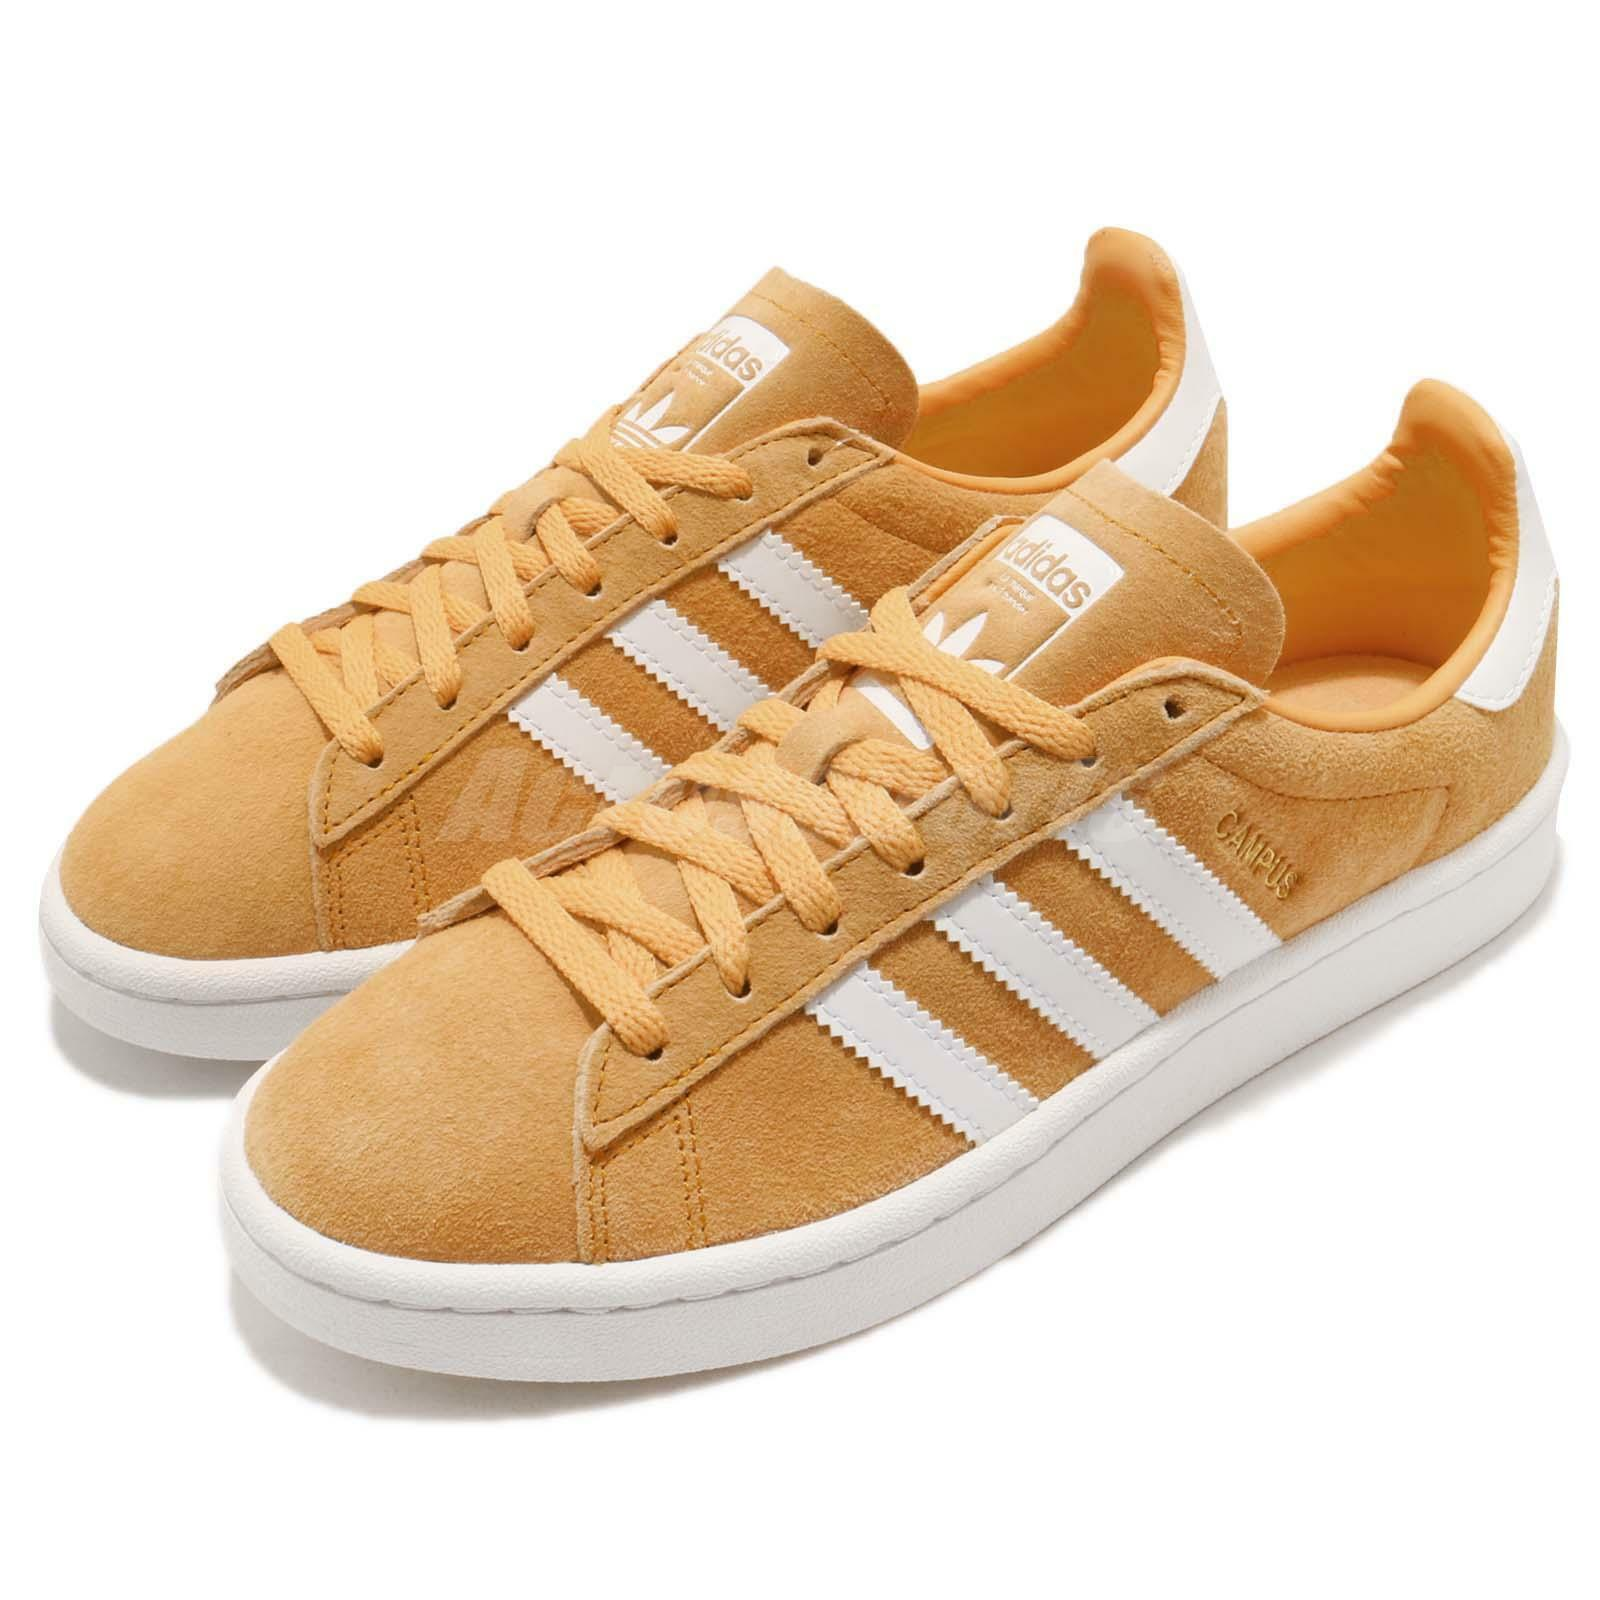 adidas Originals Campus W Chalk Shoes Orange White Women Casual Shoes Chalk Sneakers AQ1071 28e1cb